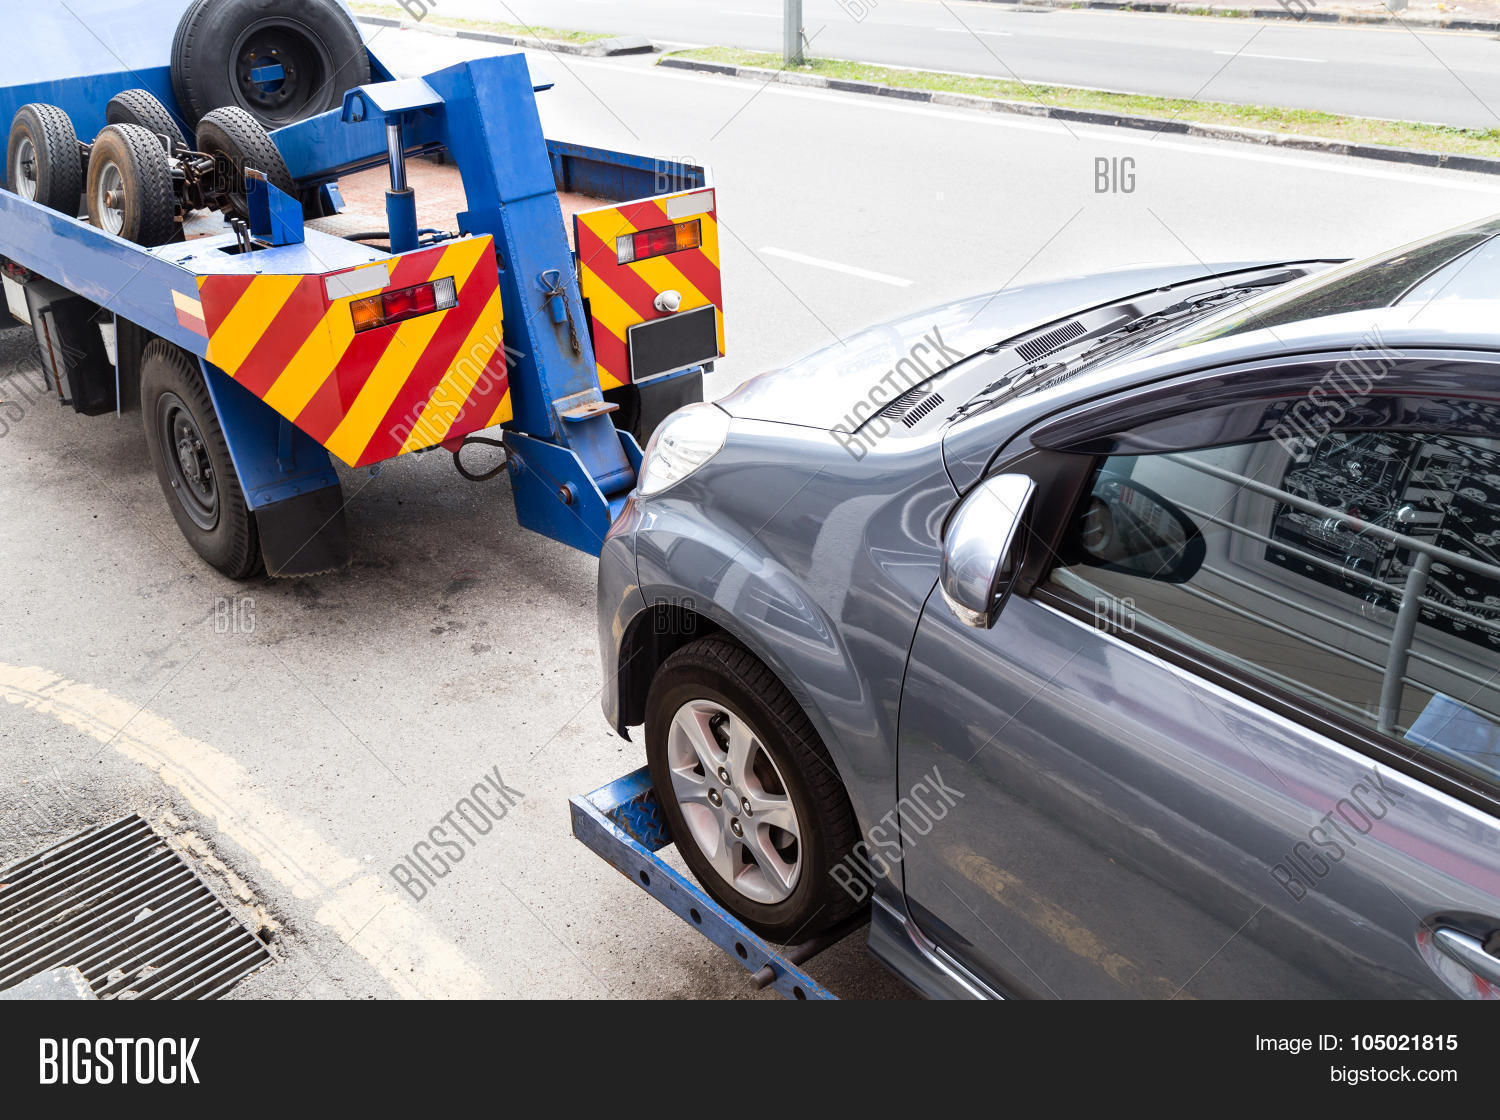 tow truck towing broken down car on image photo bigstock. Black Bedroom Furniture Sets. Home Design Ideas